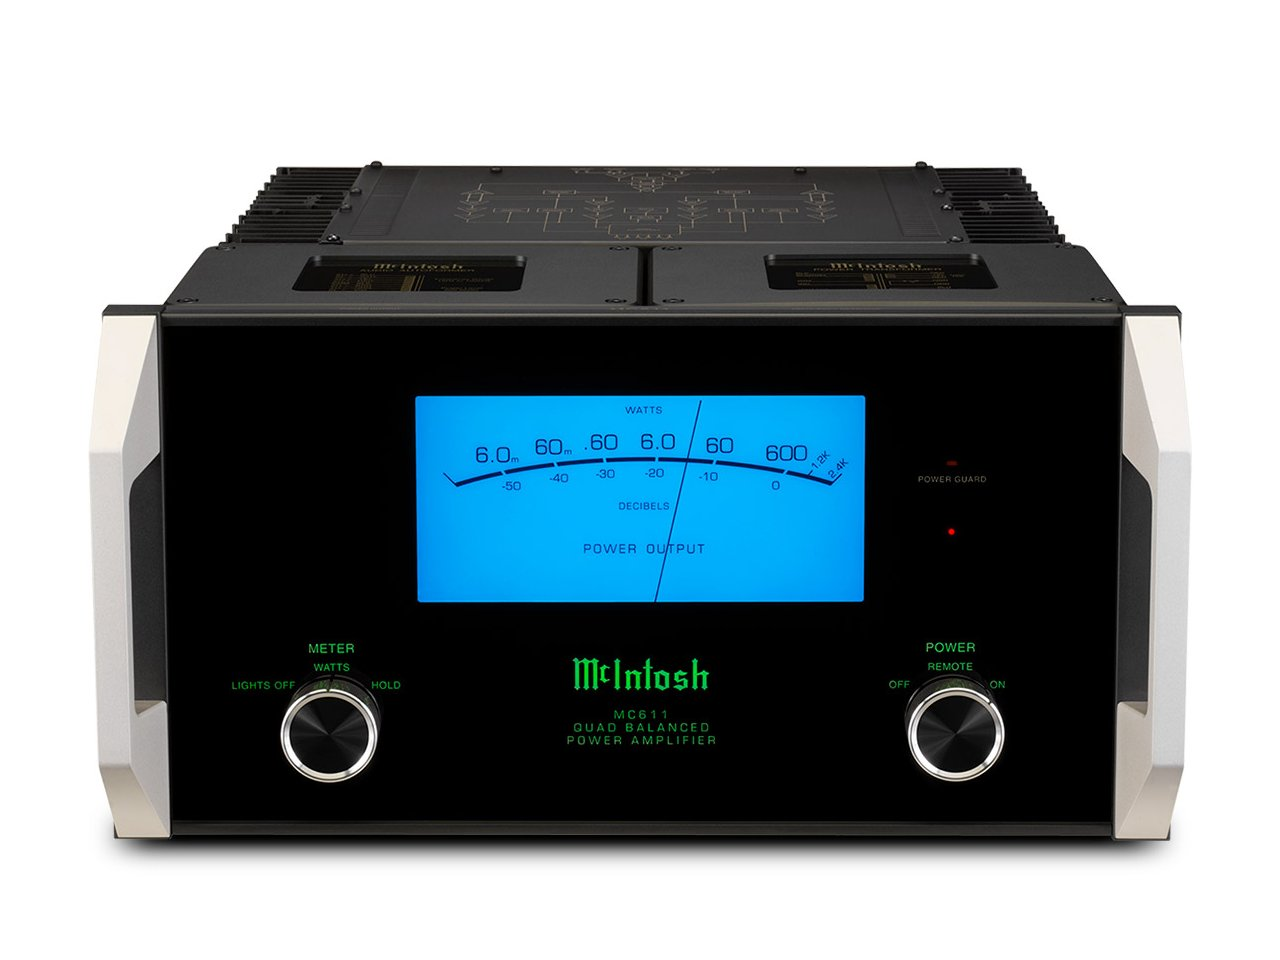 McIntosh Monoendstufe MC611 AC